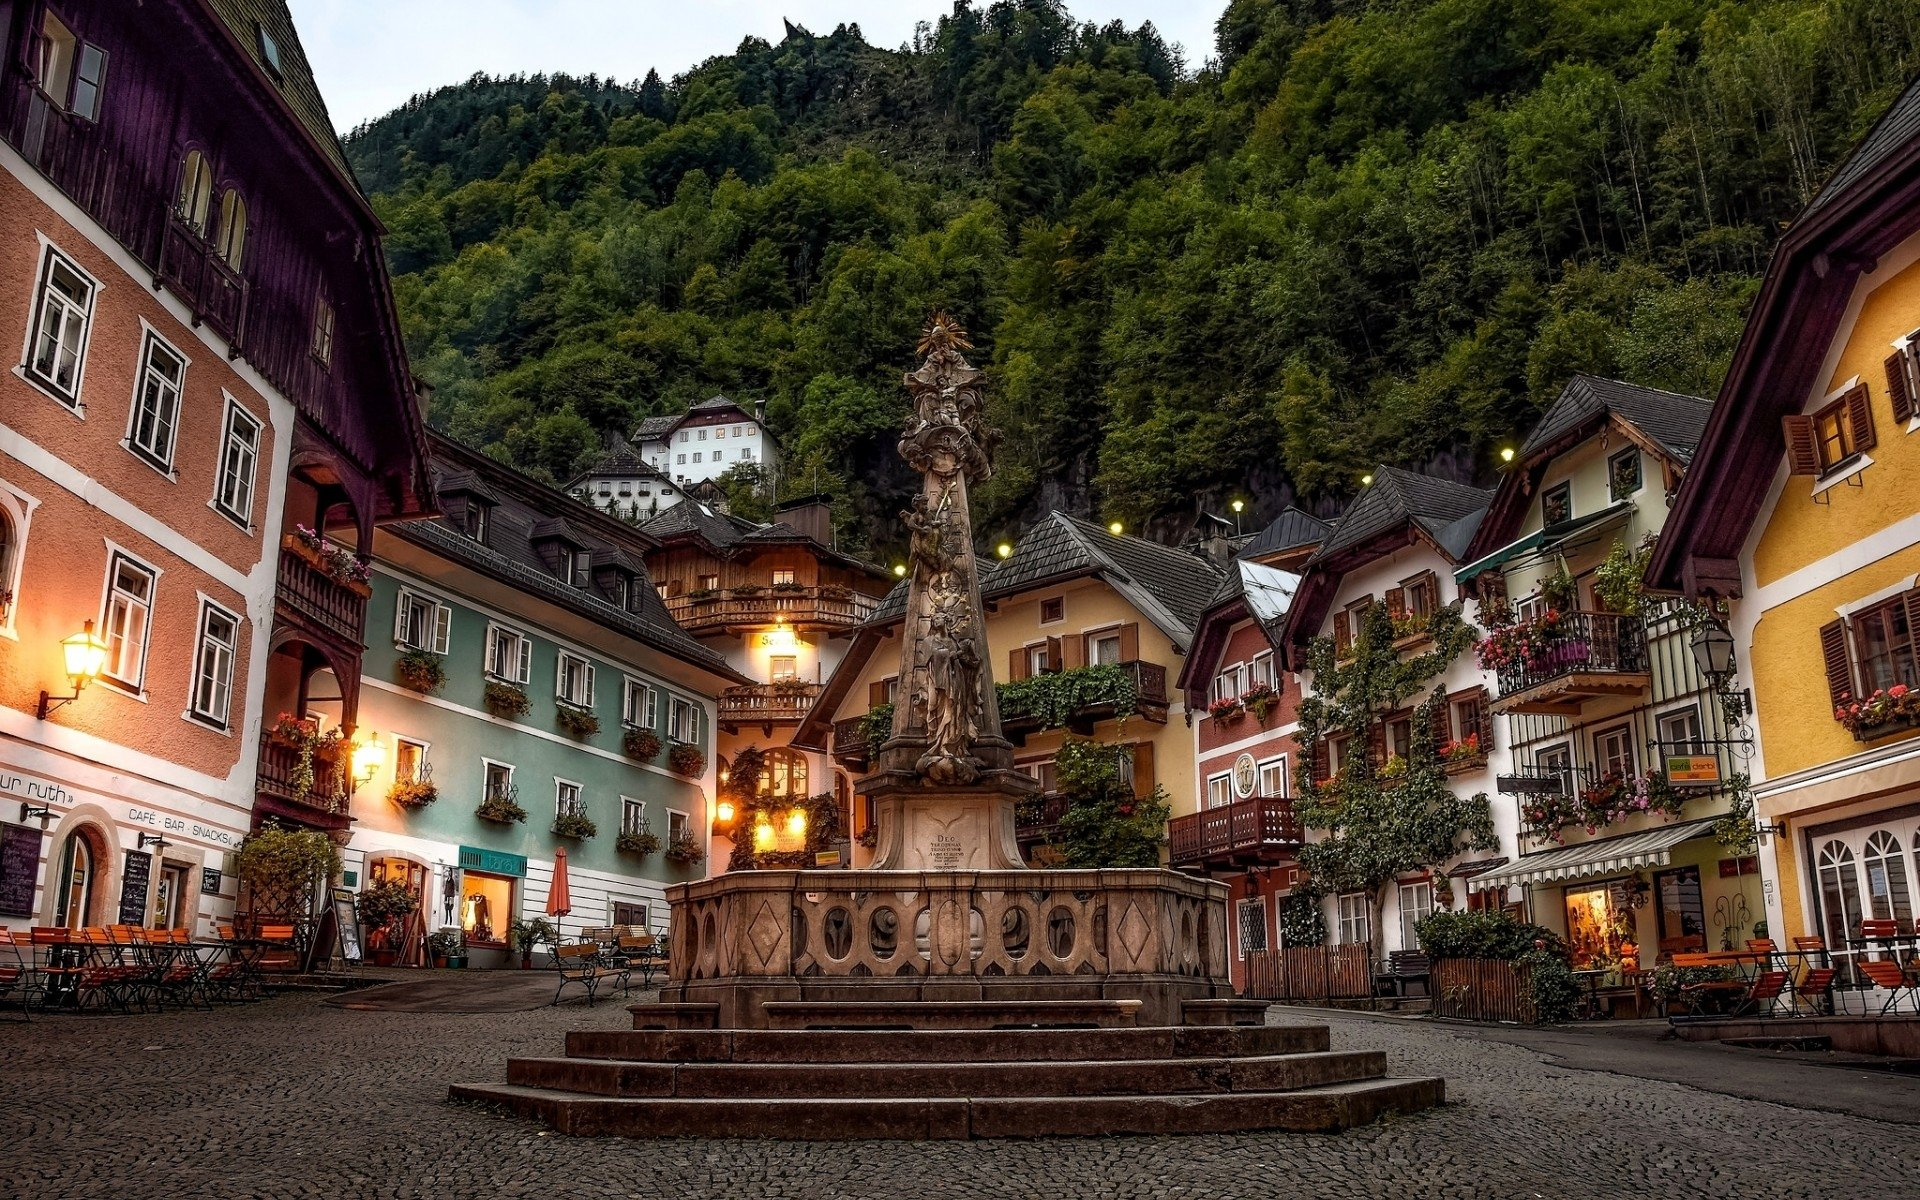 Man Made - Village  Man Made Street Square Architecture Austria Building House Wallpaper